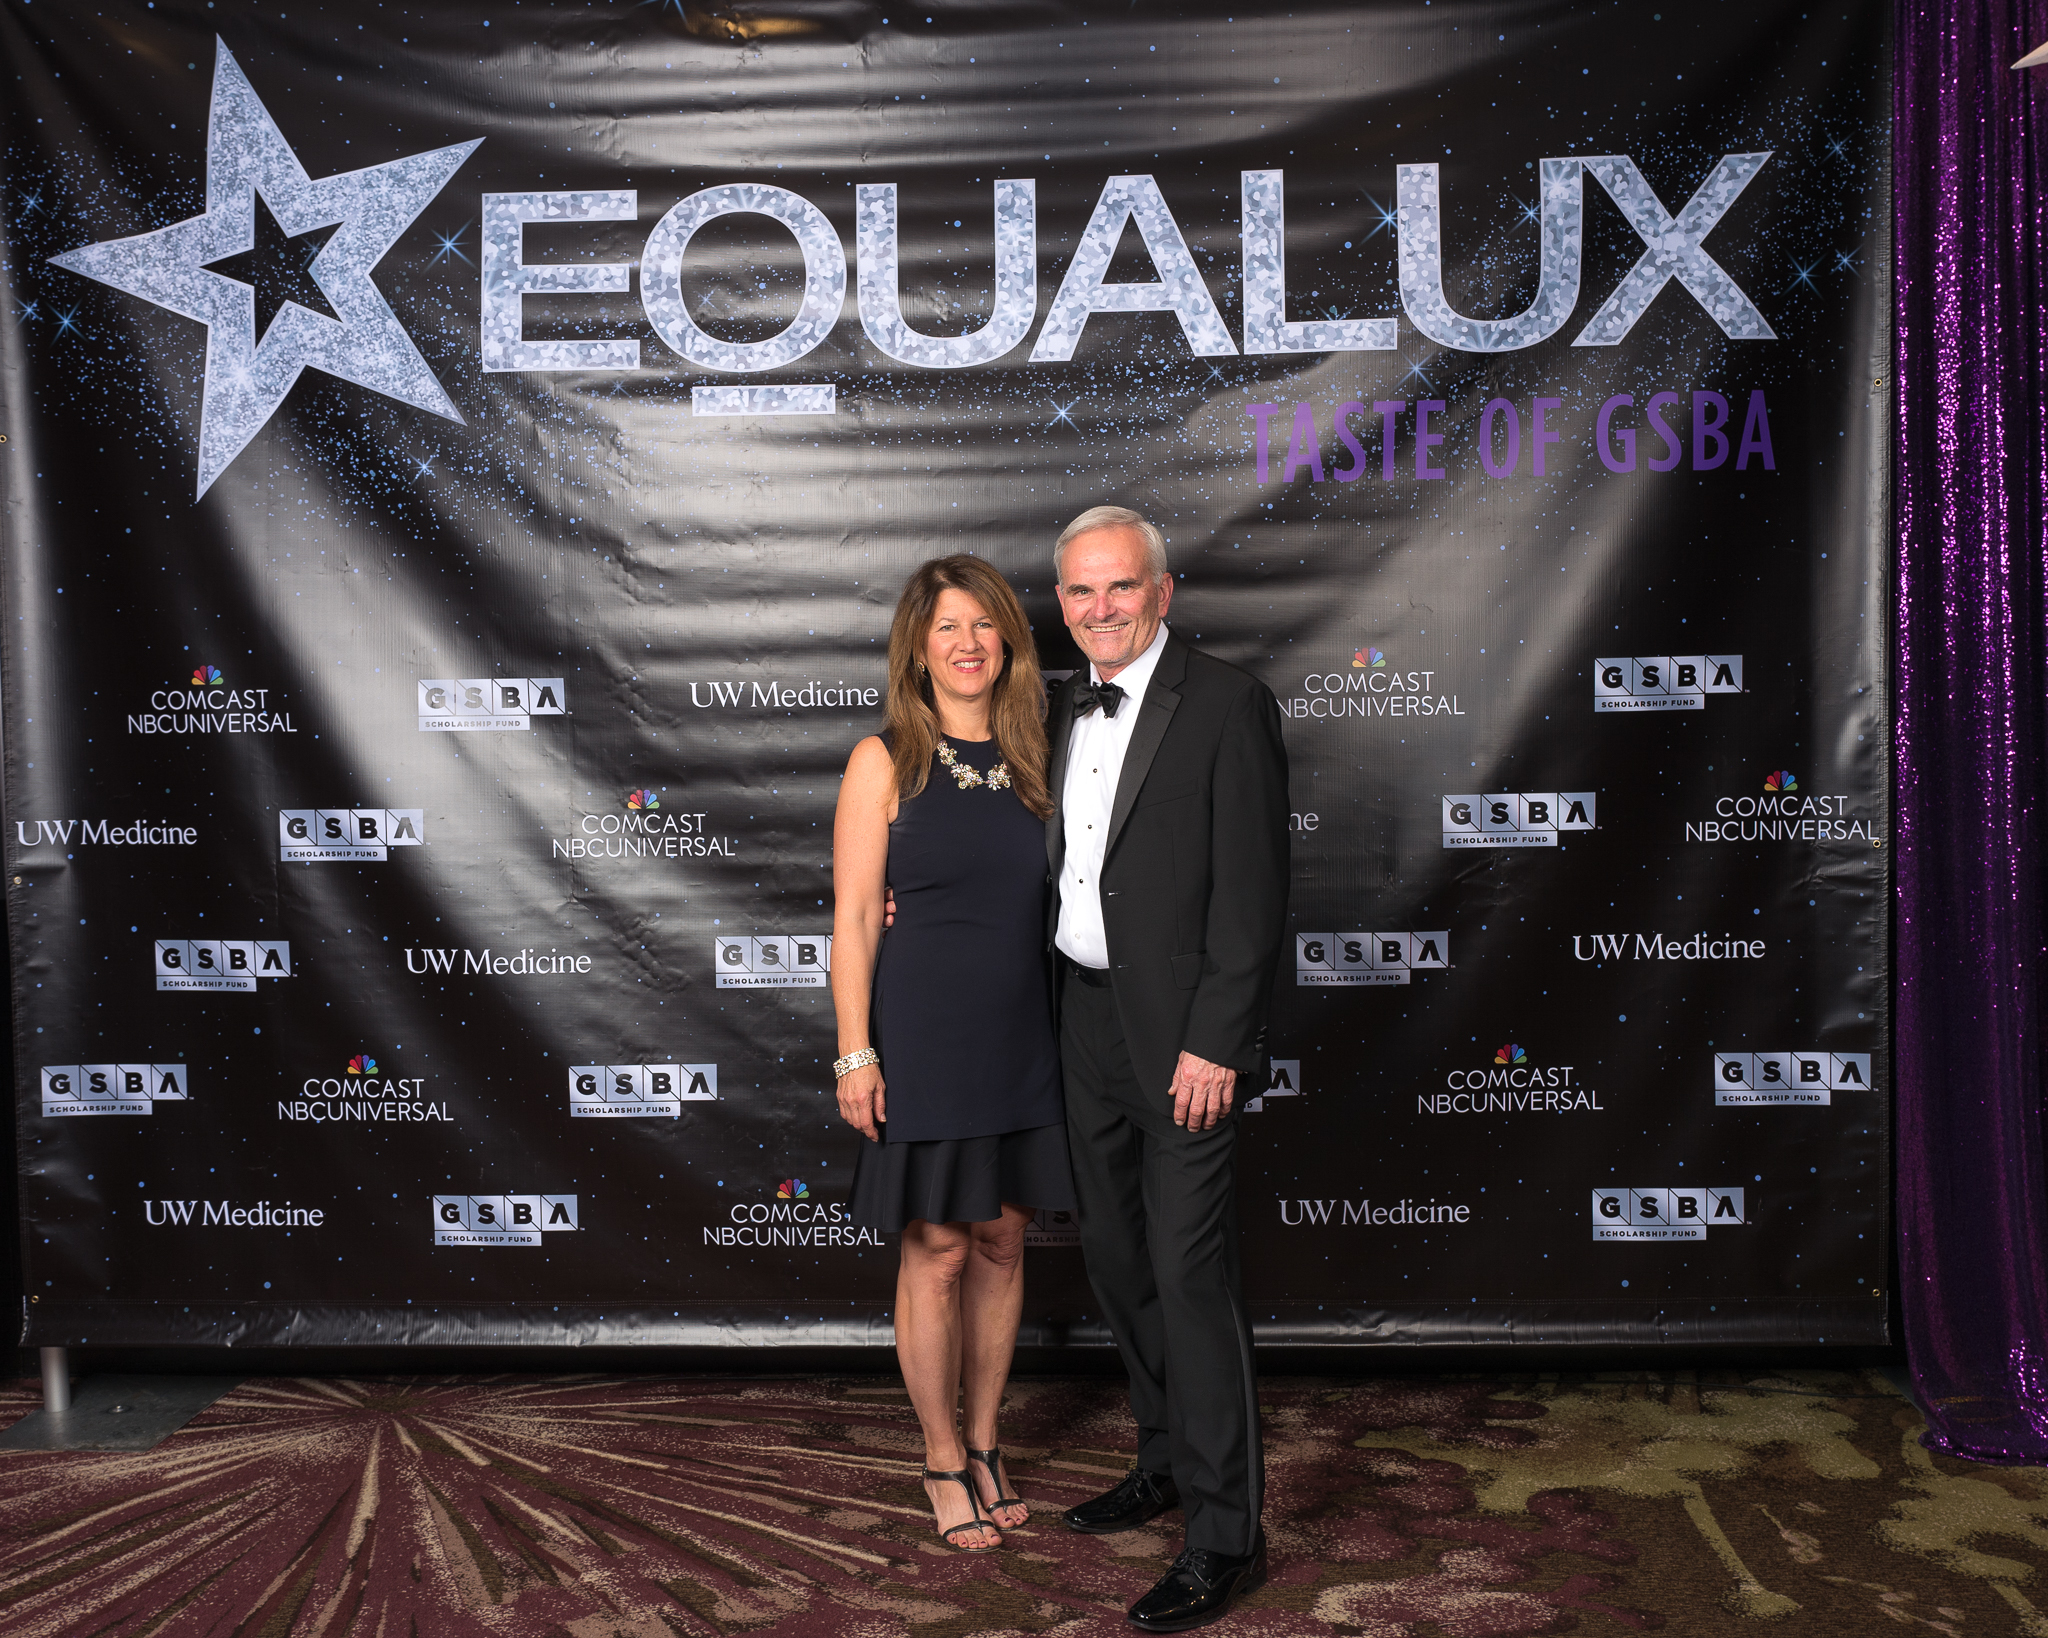 111718_GSBA EQUALUX at The Westin Seattle (Credit- Nate Gowdy)-76.jpg